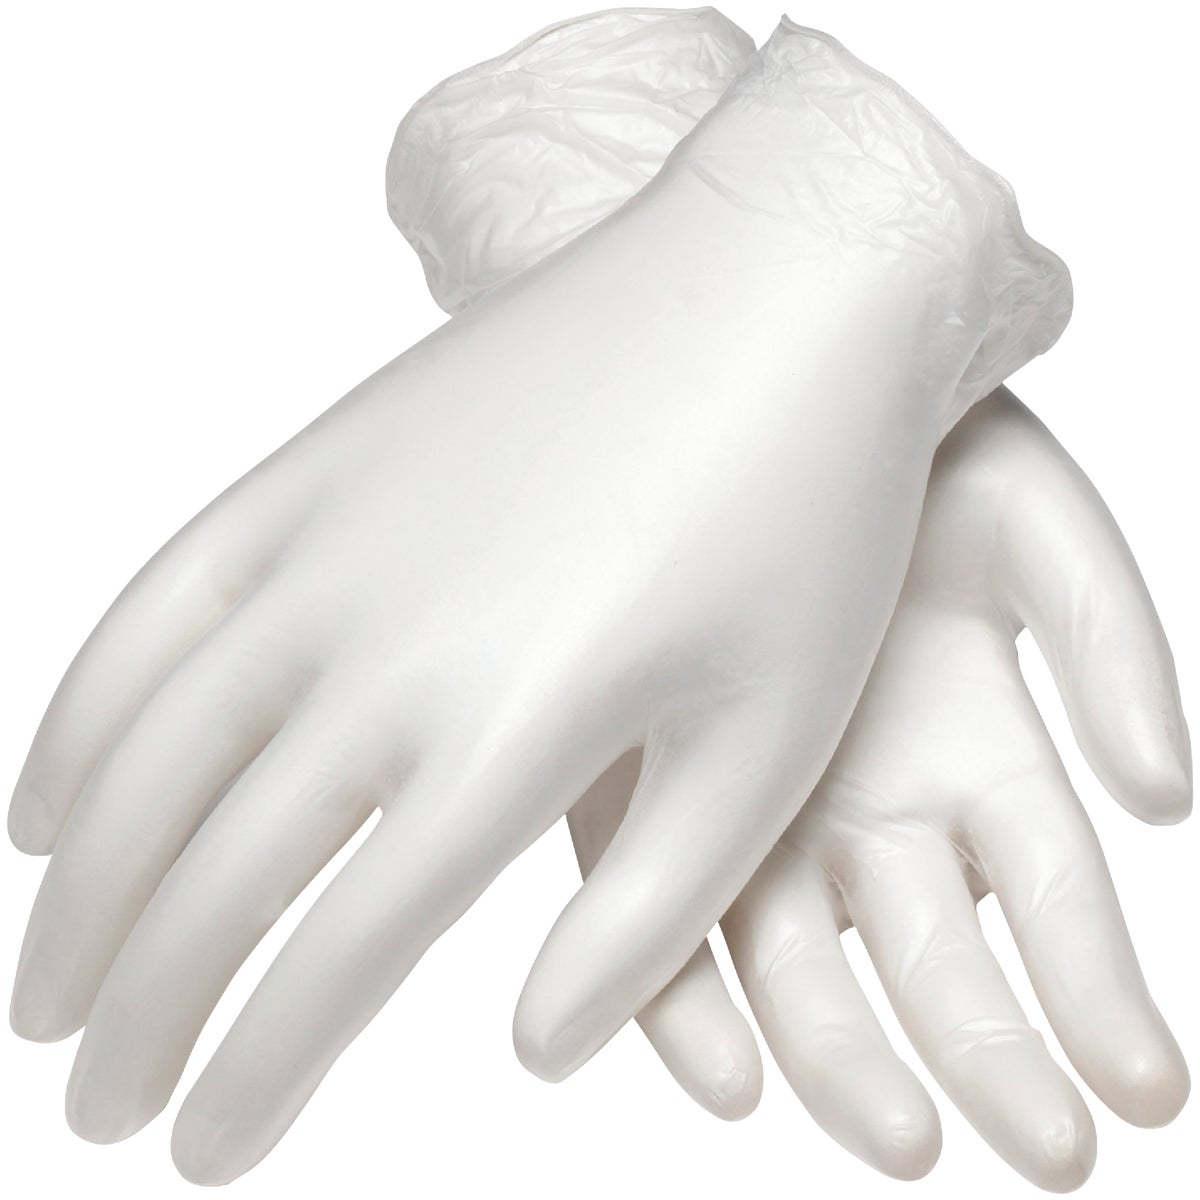 X-LARGE PF VINYL GLOVES - 2750/XL by West Chester Incom